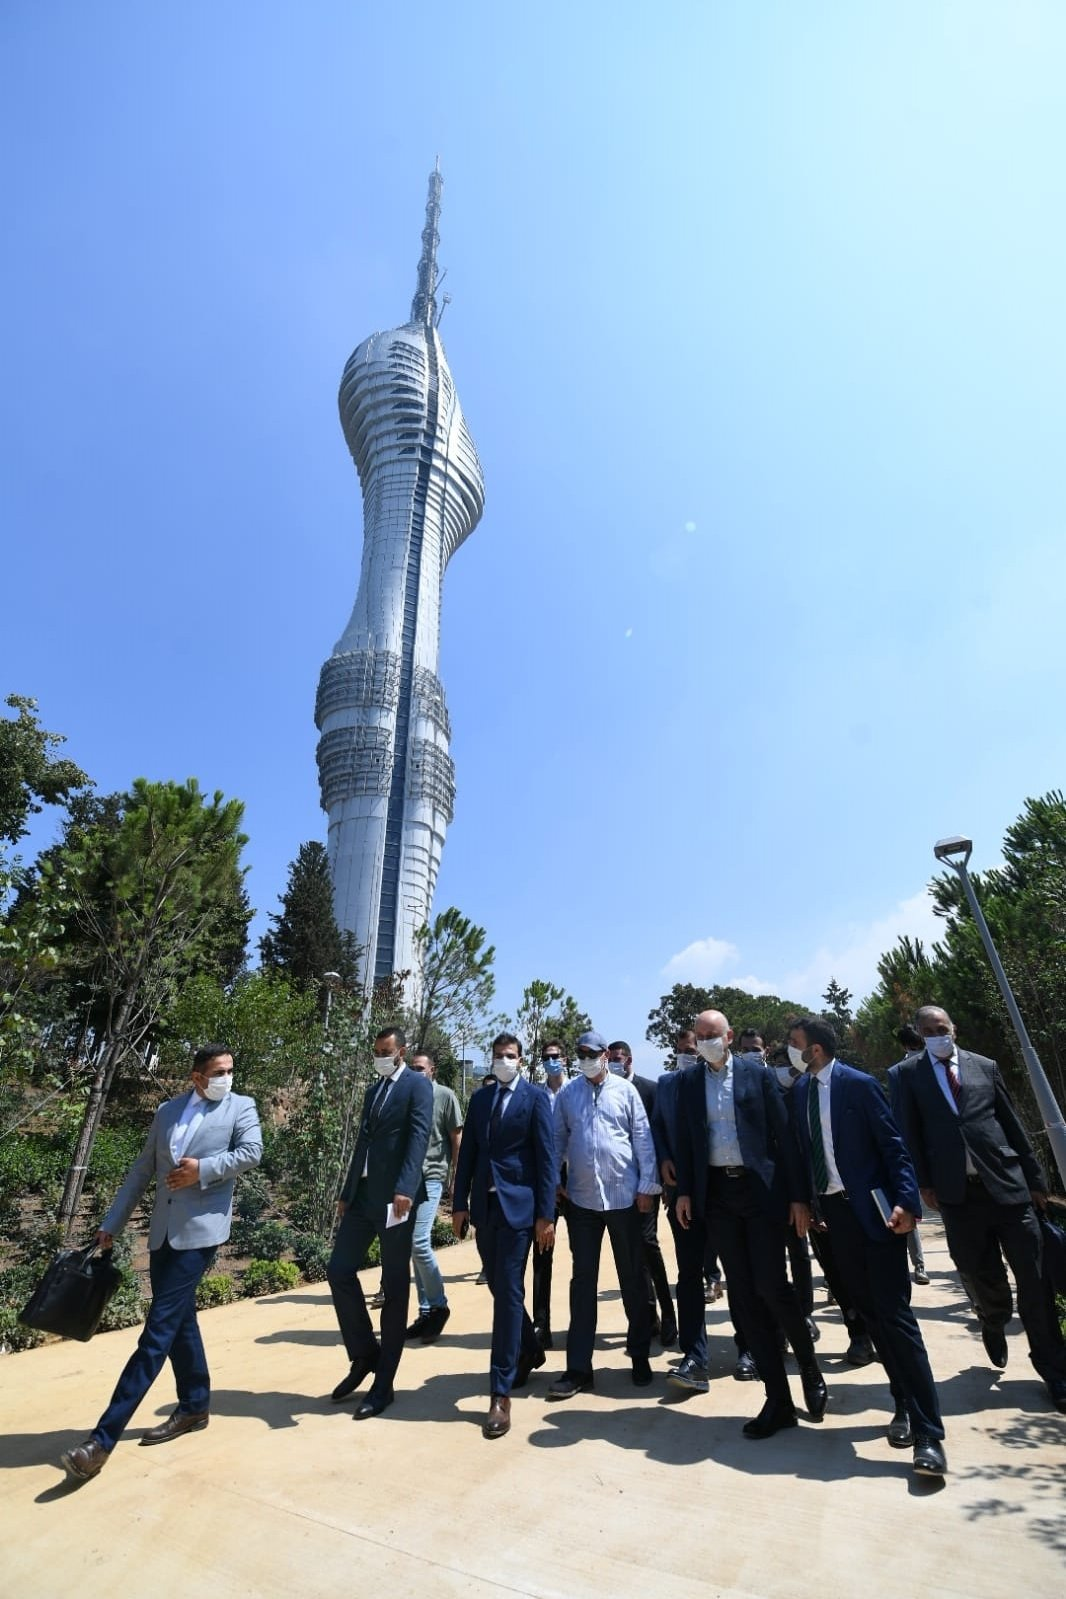 Transport and Infrastructure Minister Adil Karaismailoğlu and other officials walk outside the Çamlıca Tower in Istanbul's Üsküdar district, Turkey, Aug. 23, 2020 (DHA Photo)